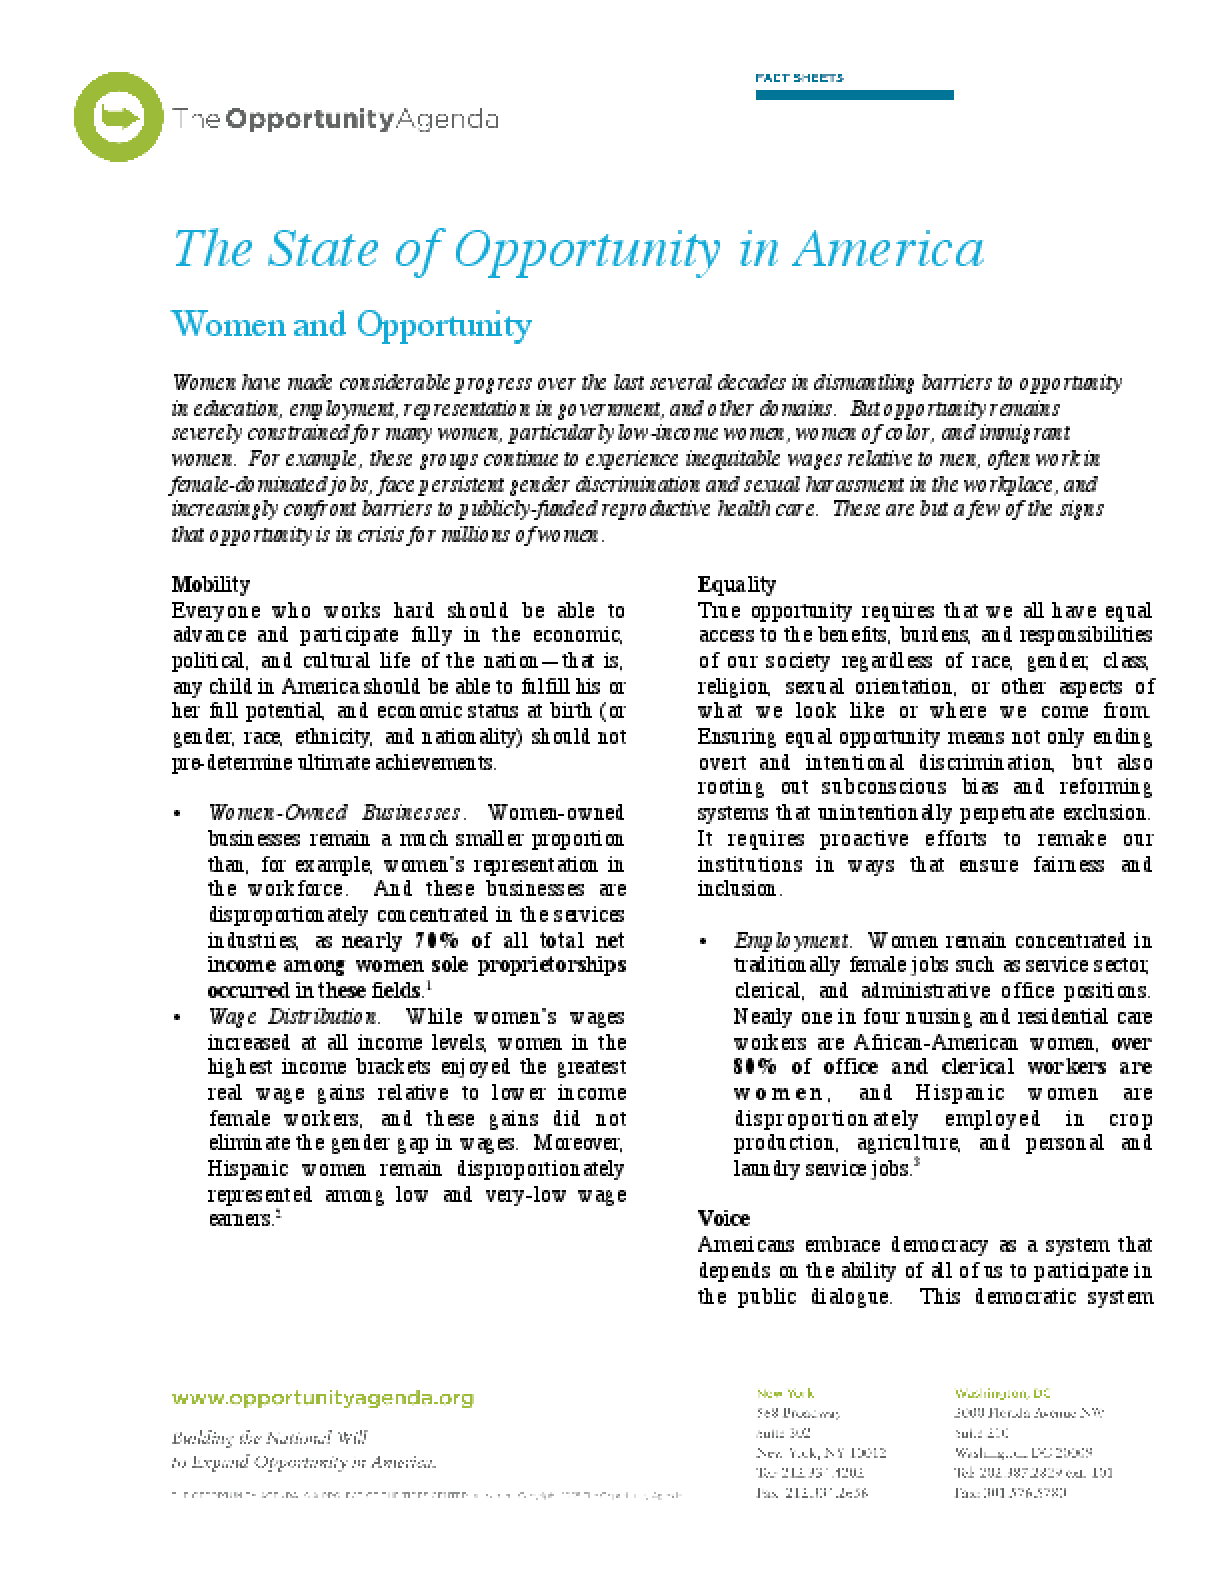 Women and Opportunity